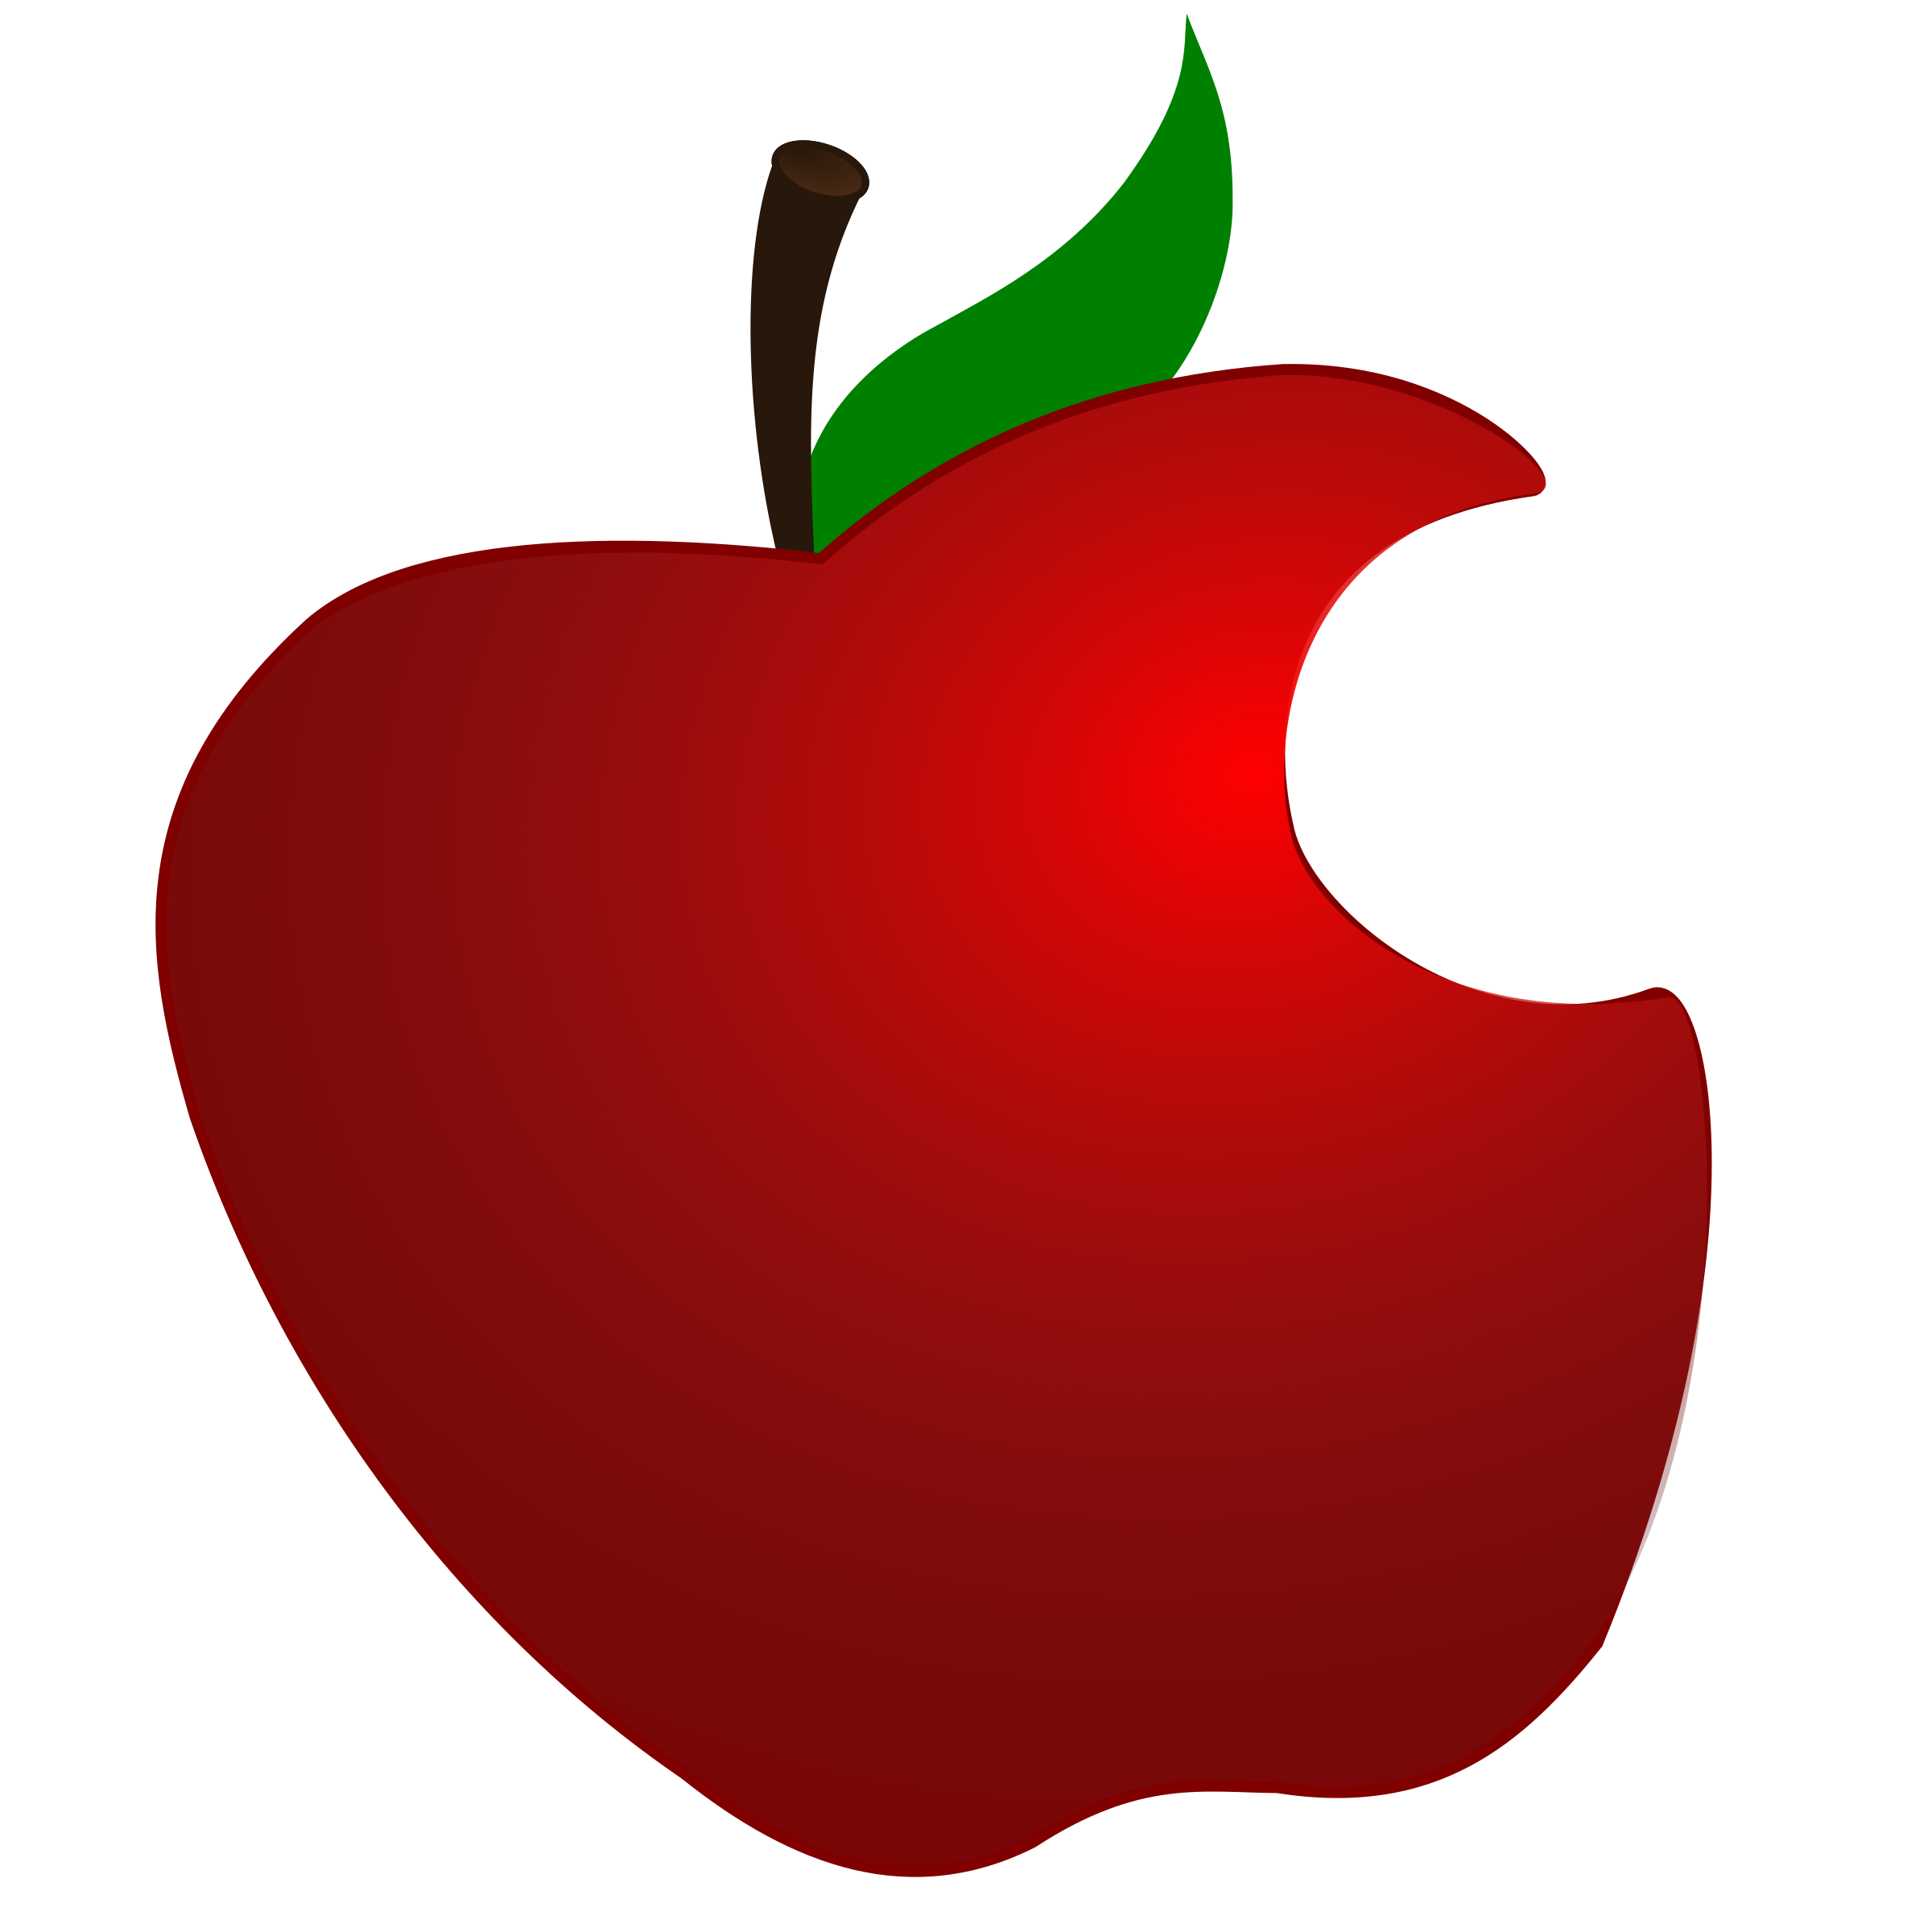 Clip art programs apple.